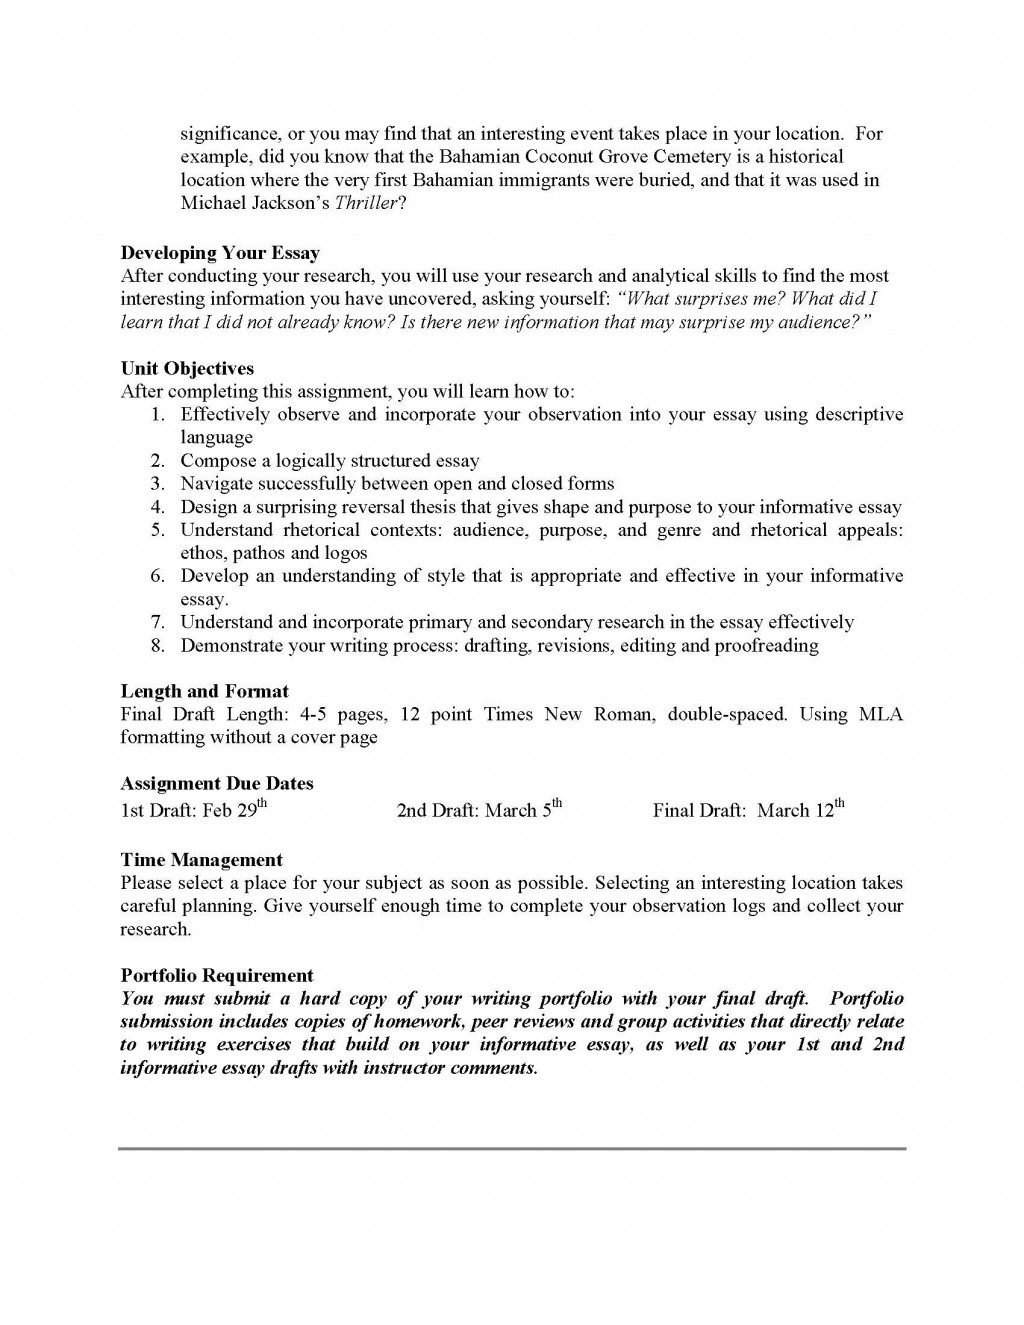 020 Essay Example Informative Unit Assignment Page 2 Unforgettable Outline 5th Grade Examples Large